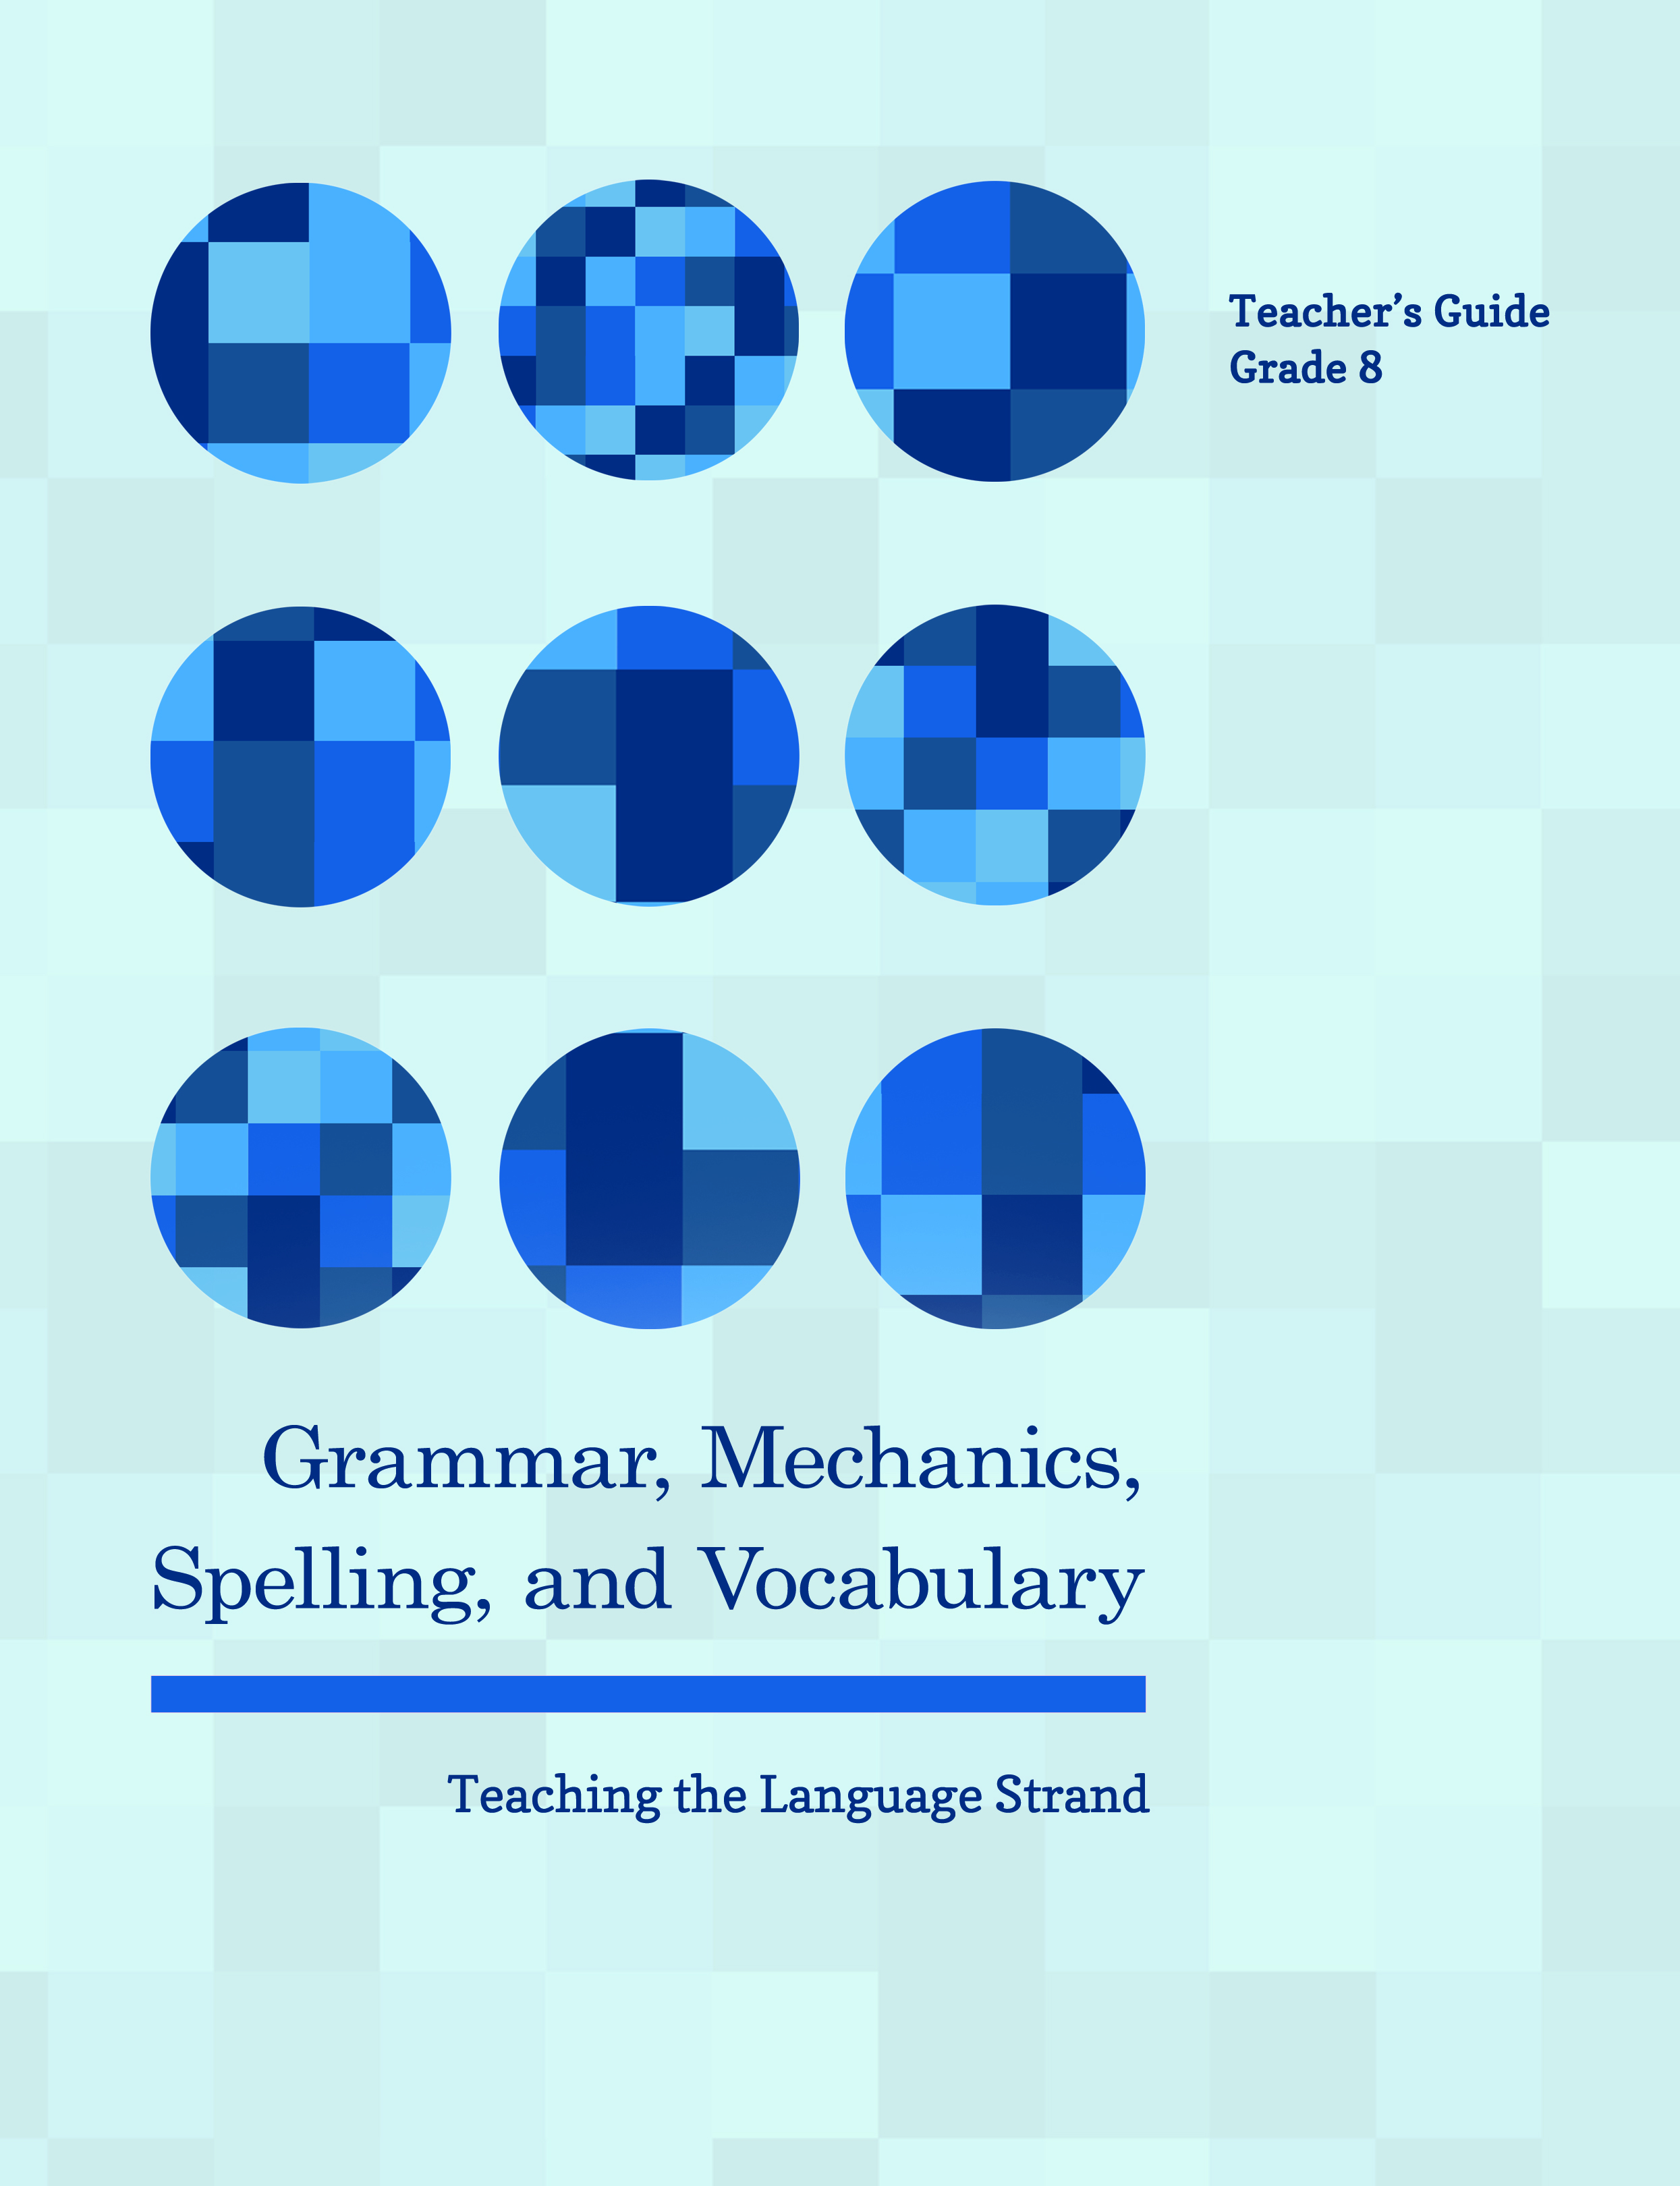 Pennington Publishing's Grammar, Mechanics, Spelling, and Vocabulary (Teaching the Language Strand) Grades 4-8 Programs